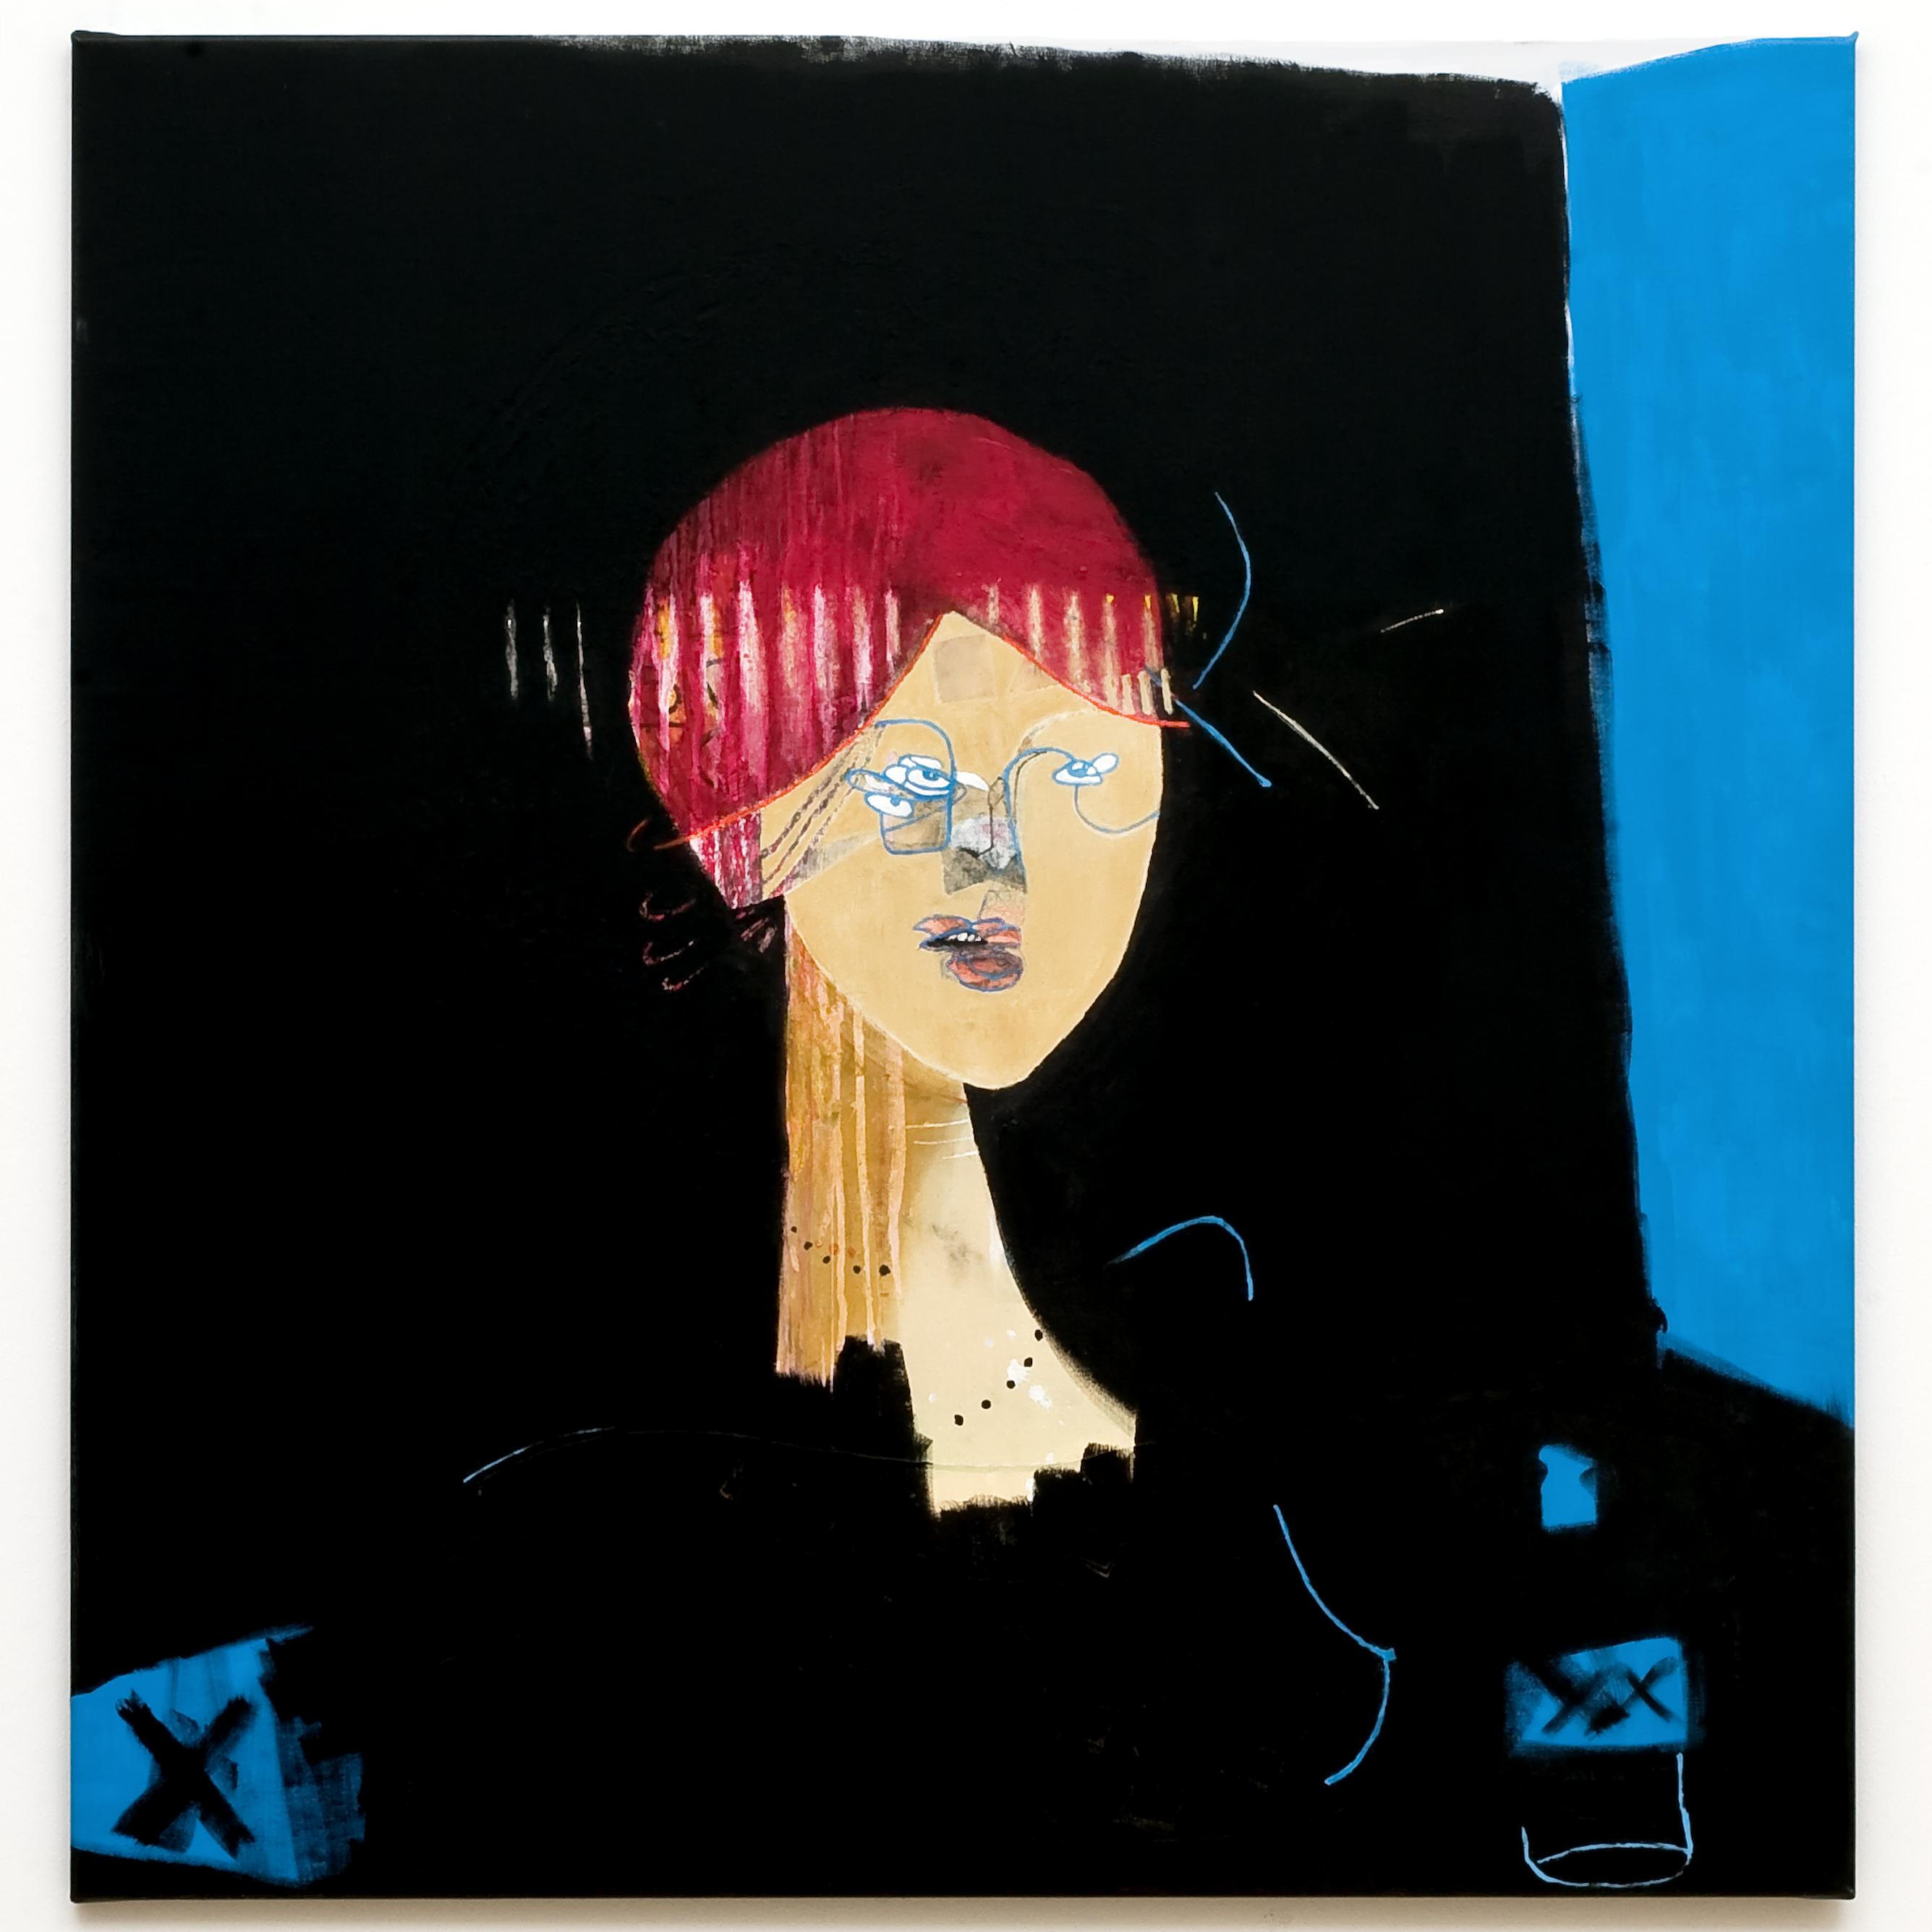 ELI AS REDHEAD-100X100Cm-39.4X39.4In-MMC-2009-BERLIN